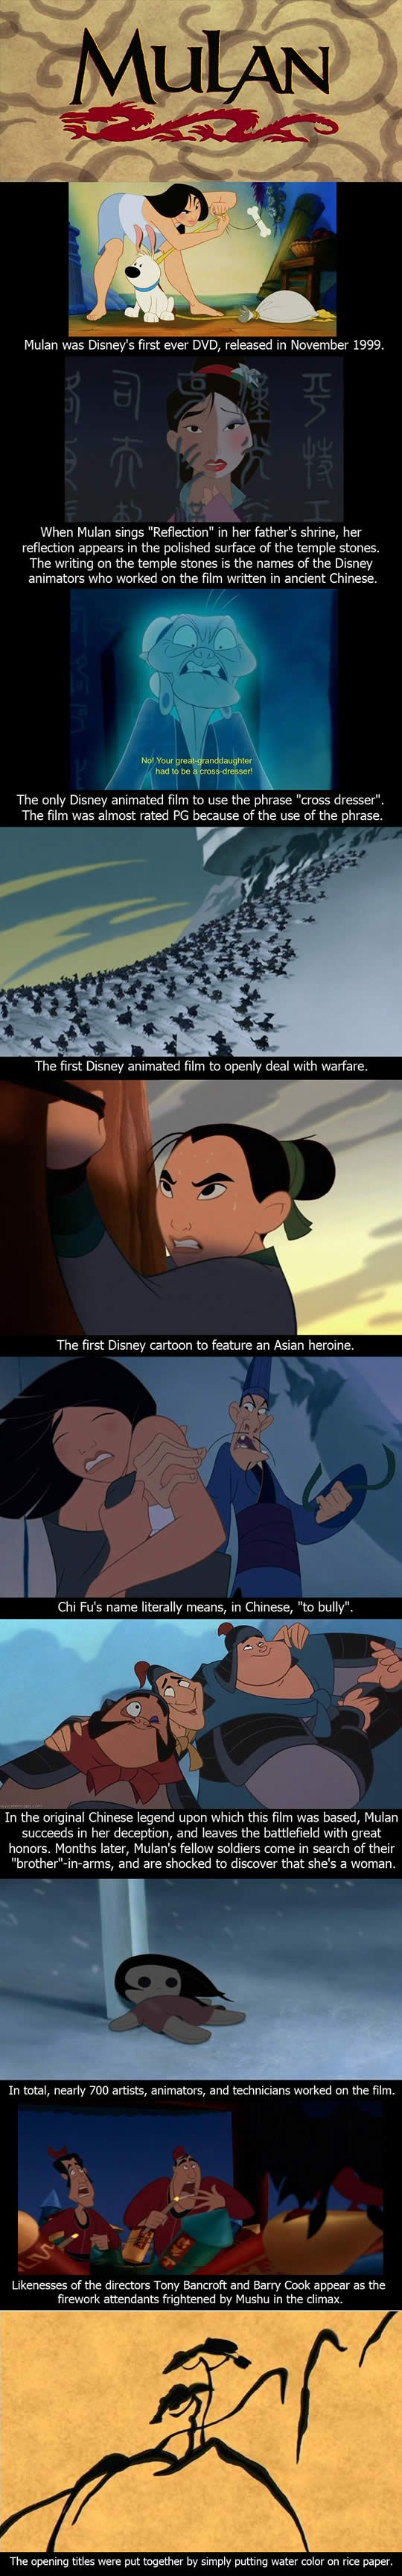 Mulan. One of my favorites!